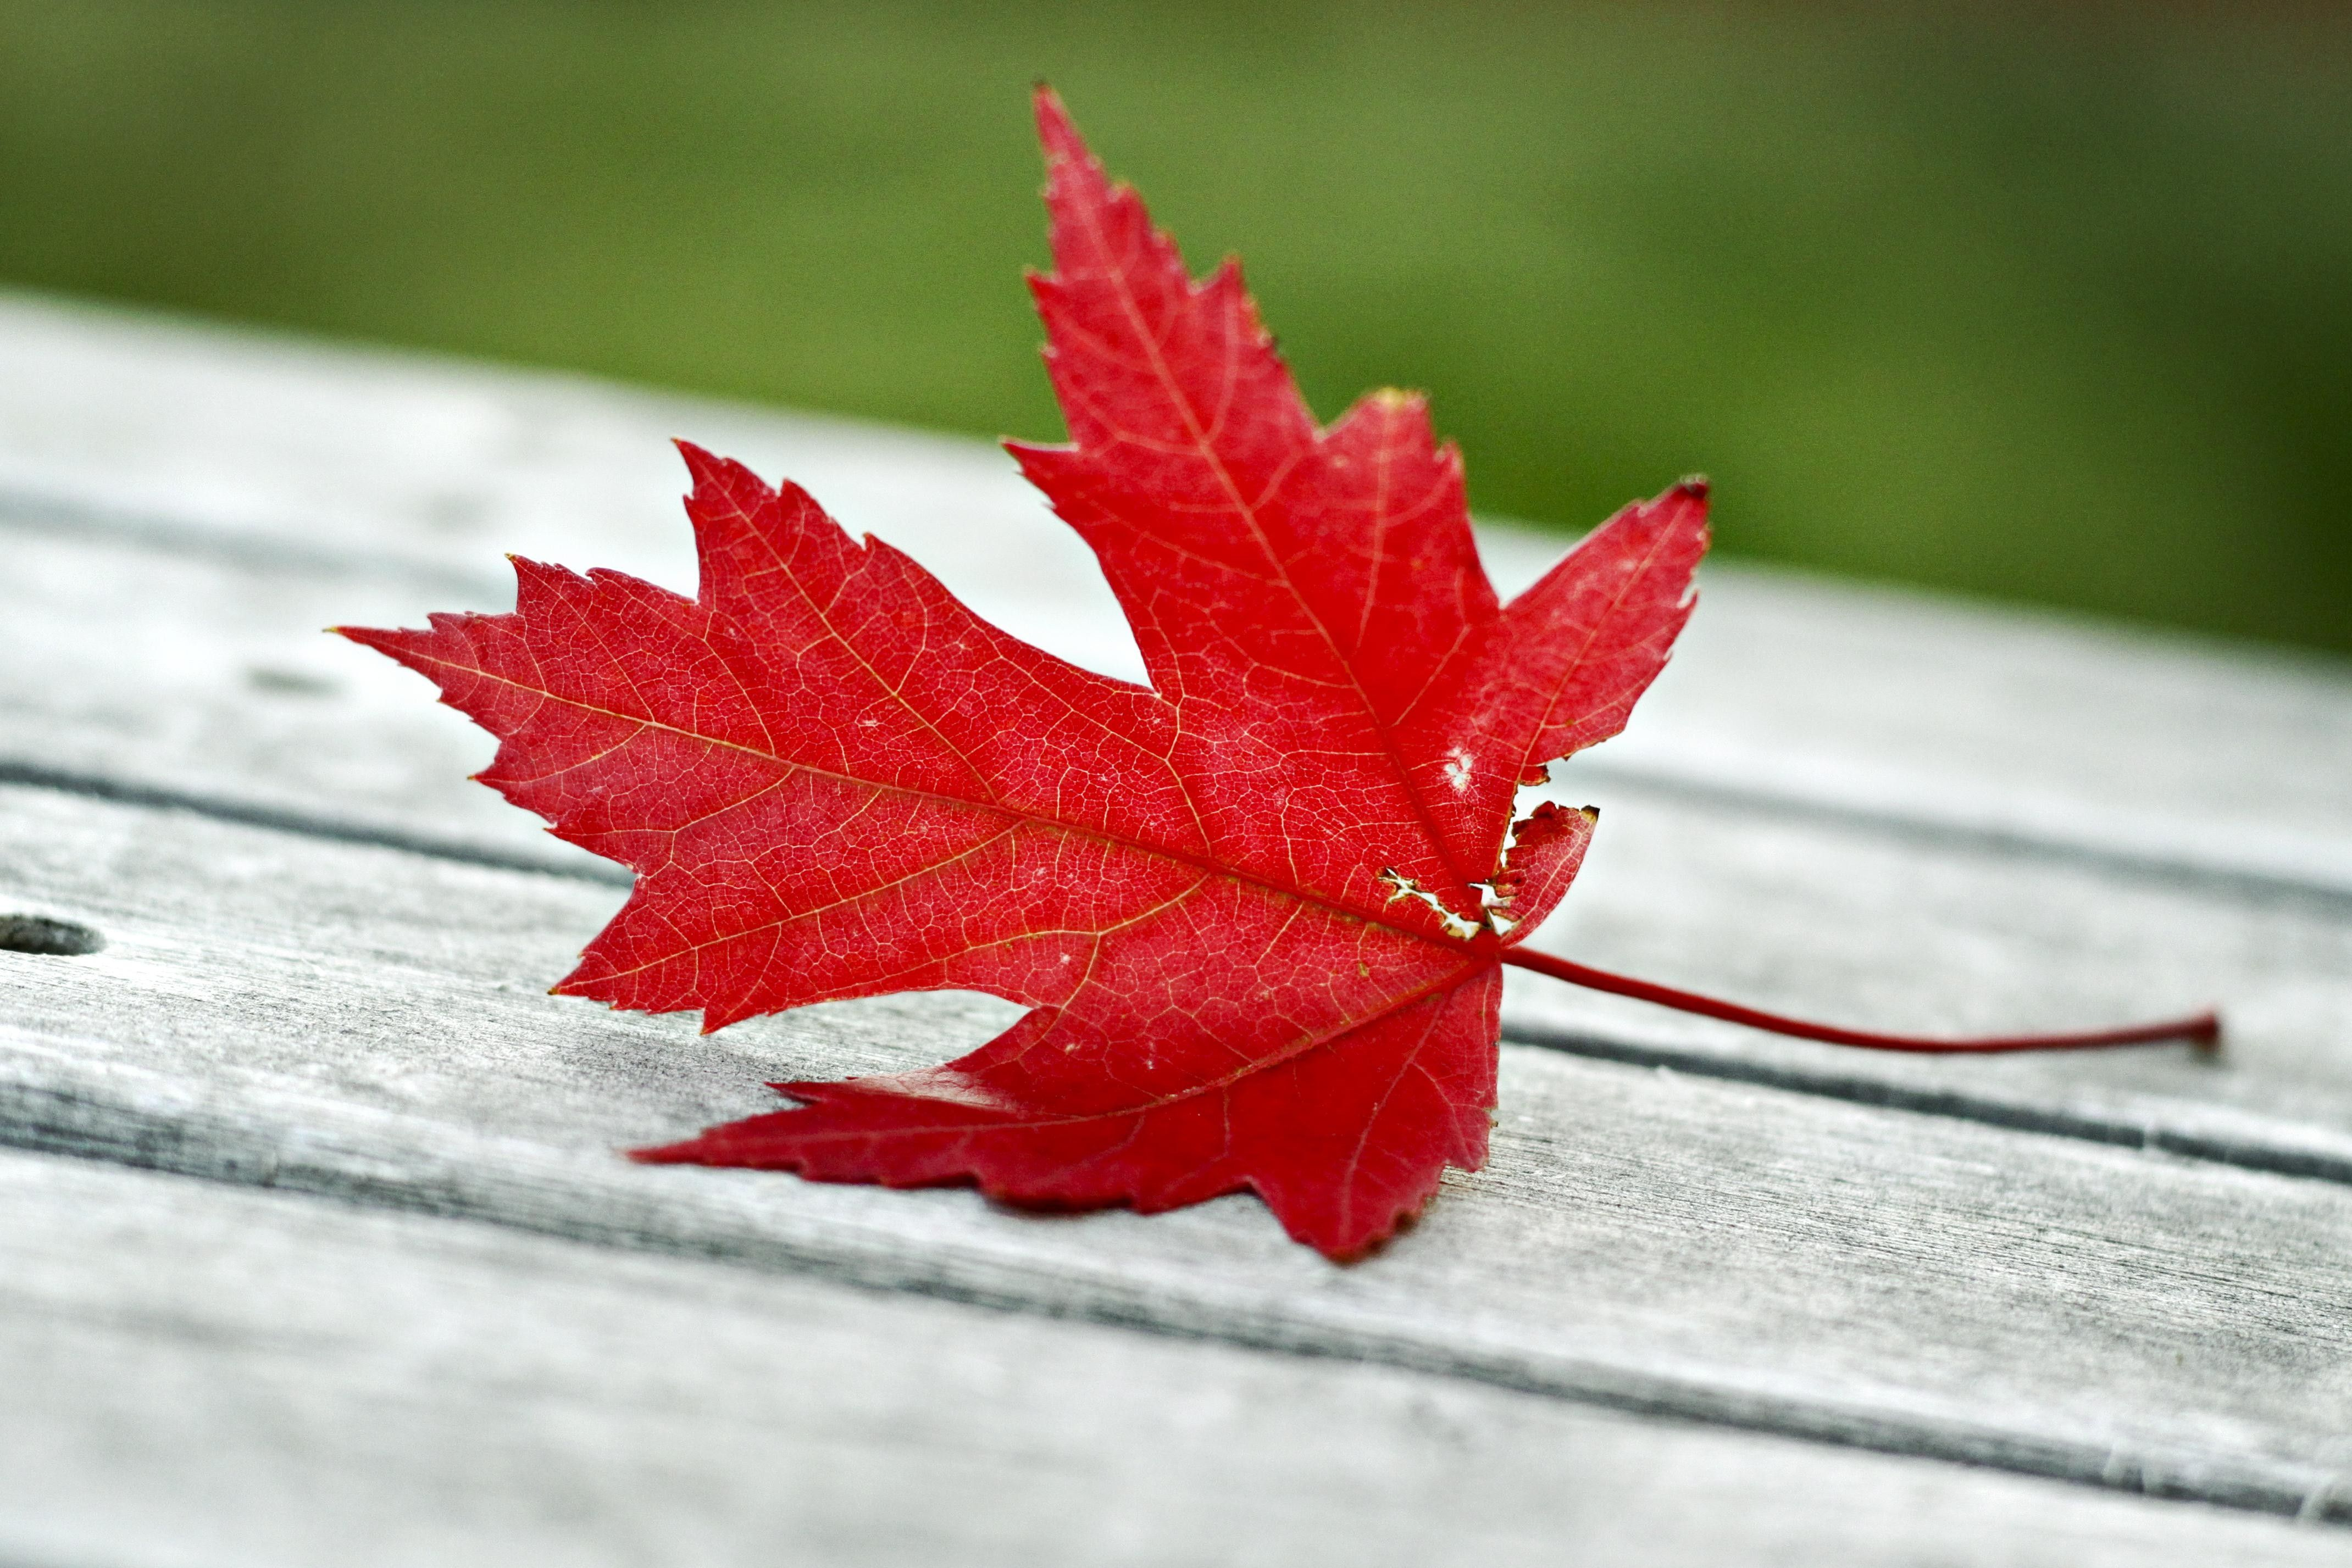 A red leaf that has fallen on a wooden deck.